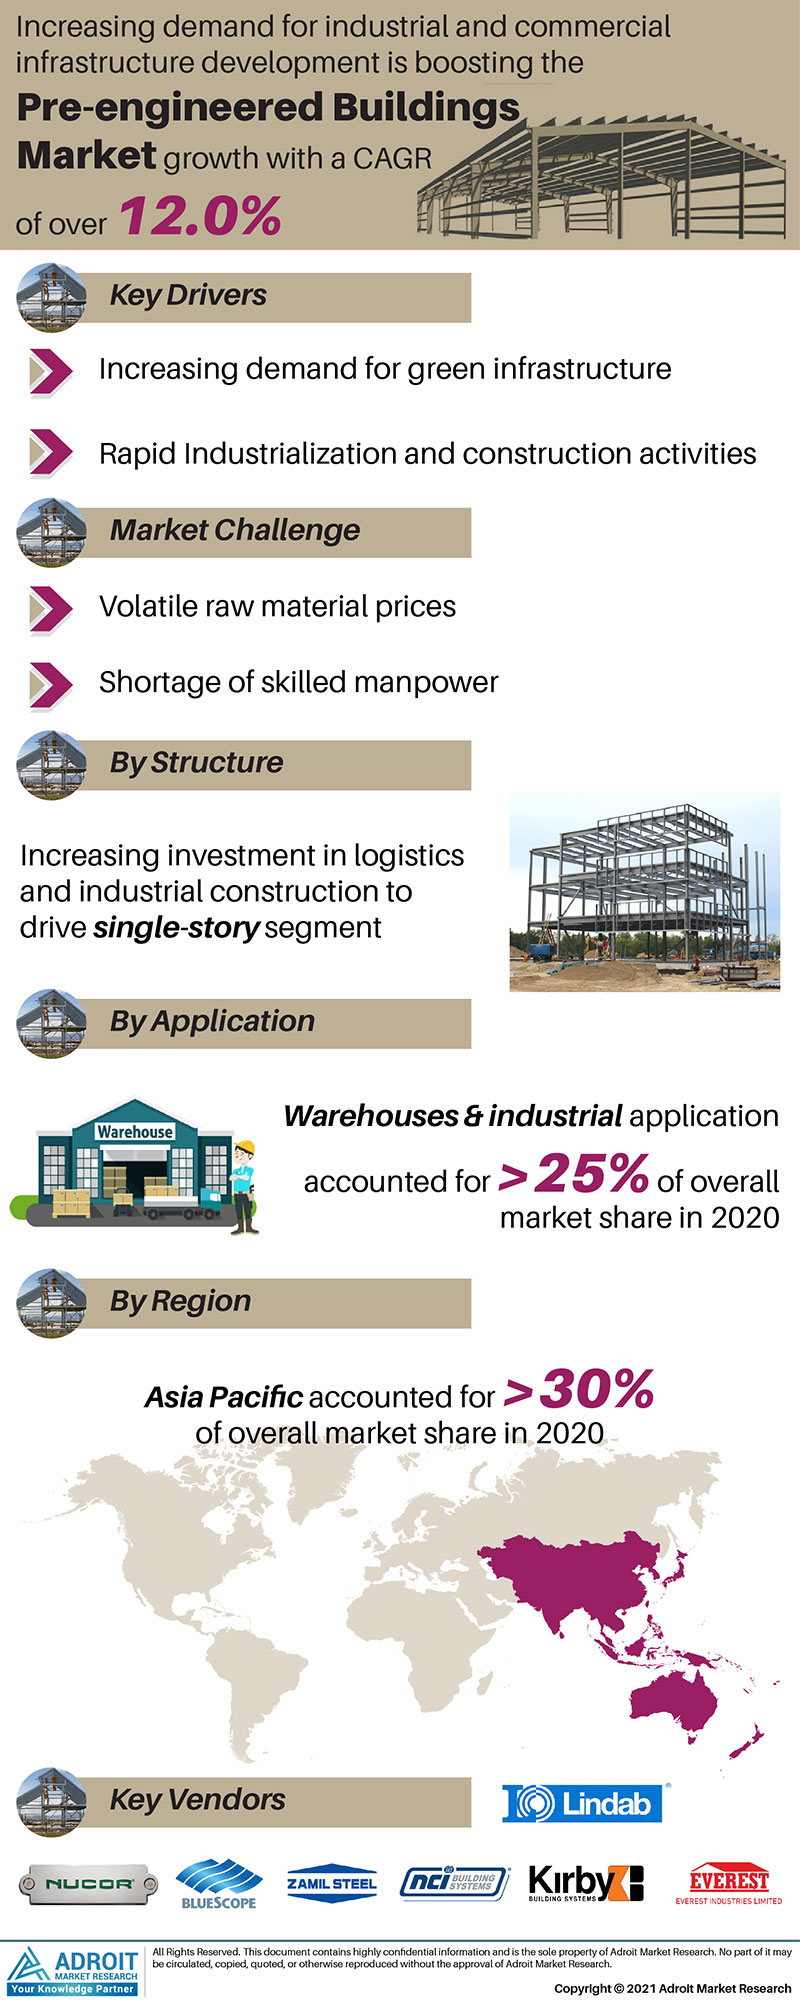 Pre-engineered Buildings Market Size 2017 By Application, Product, Region and Forecast 2019 to 2025